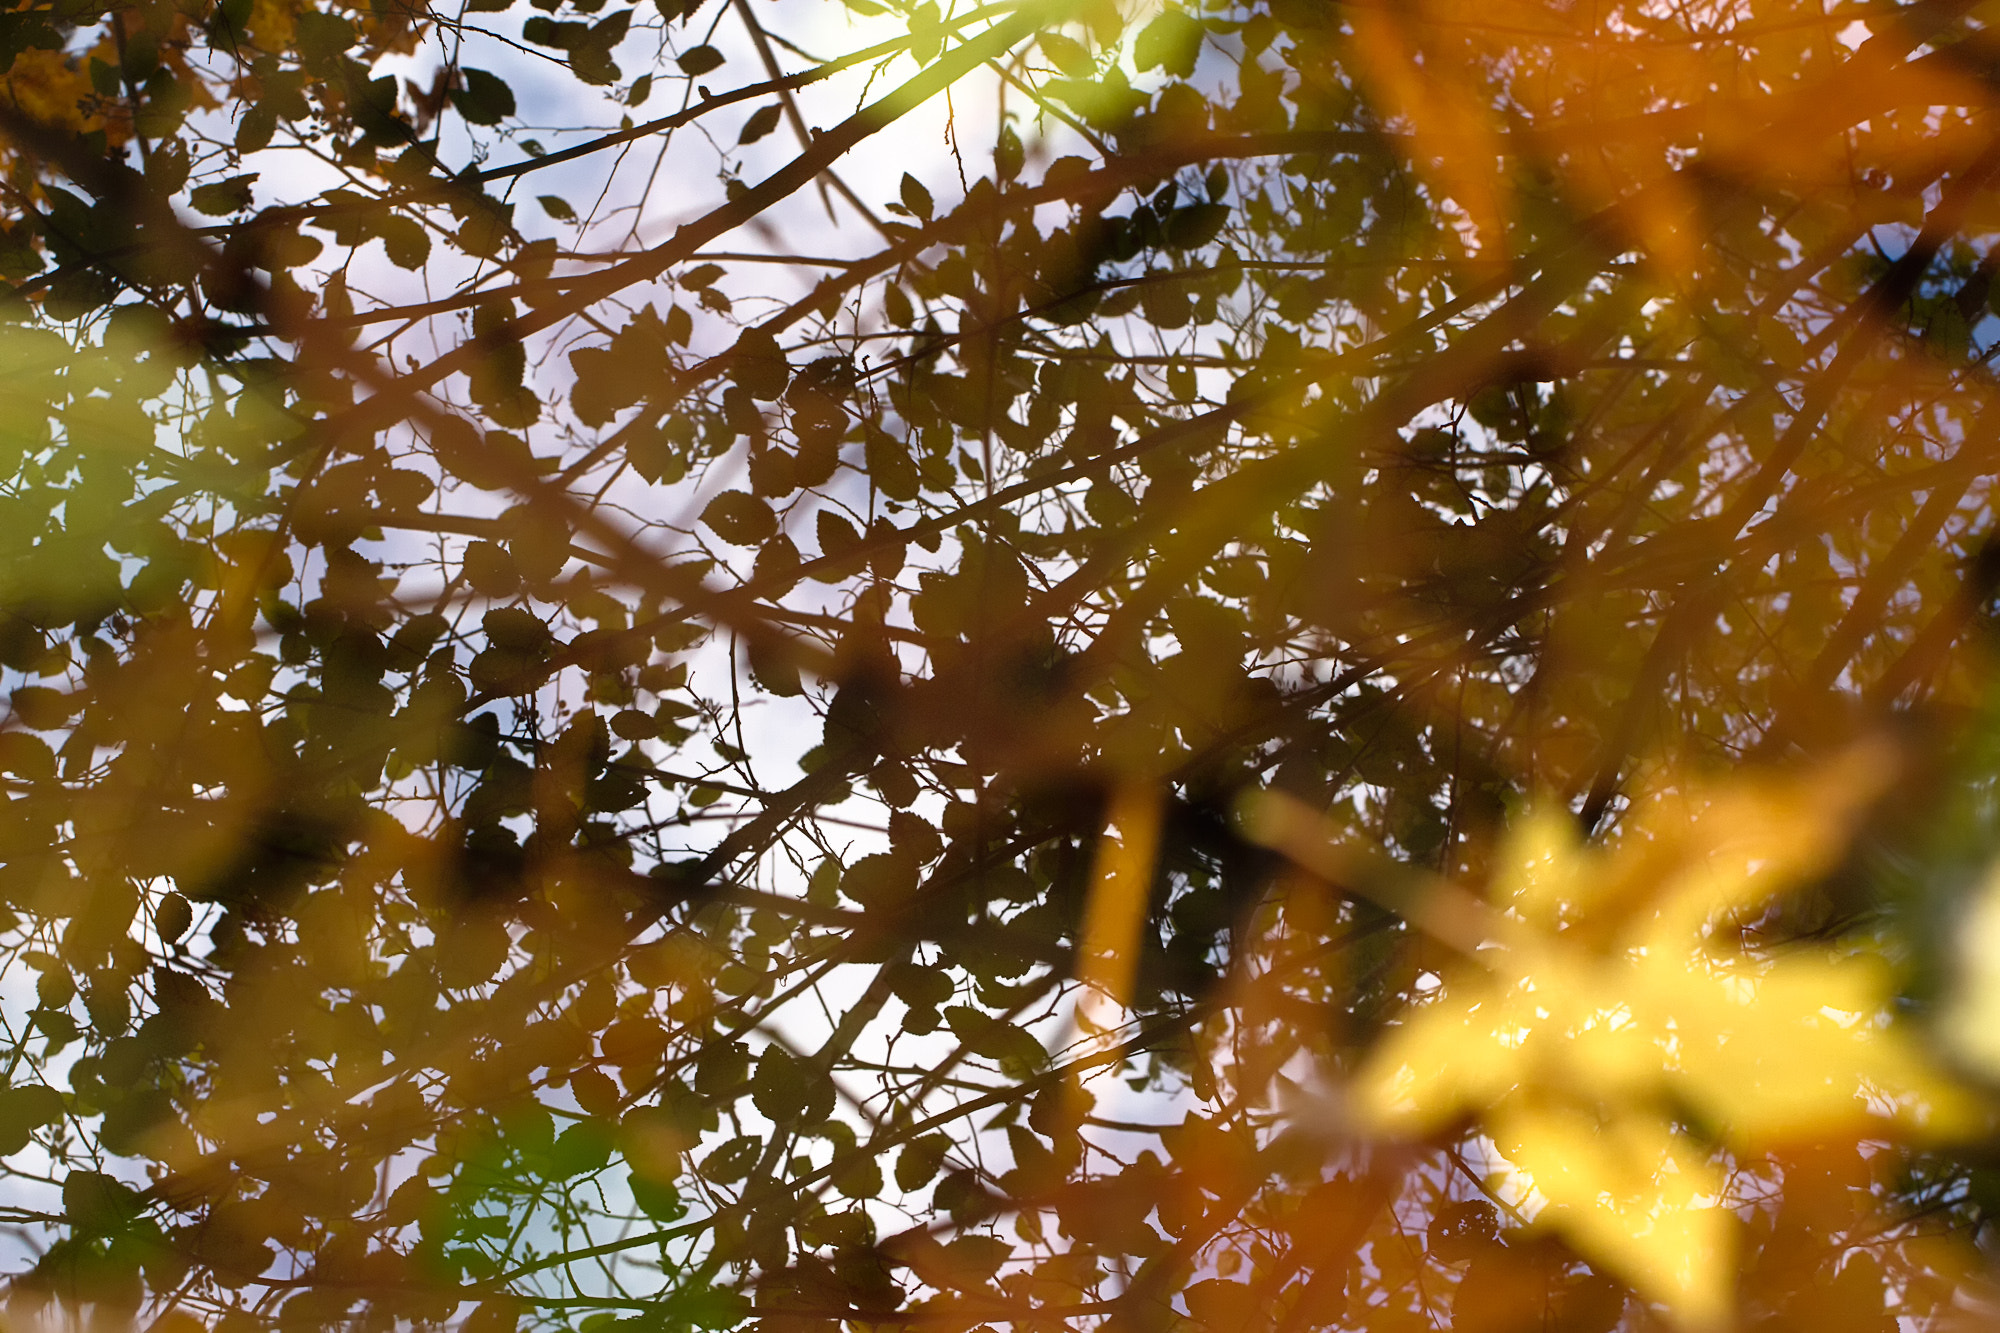 Photograph Fall in Water by Joseph Calev on 500px